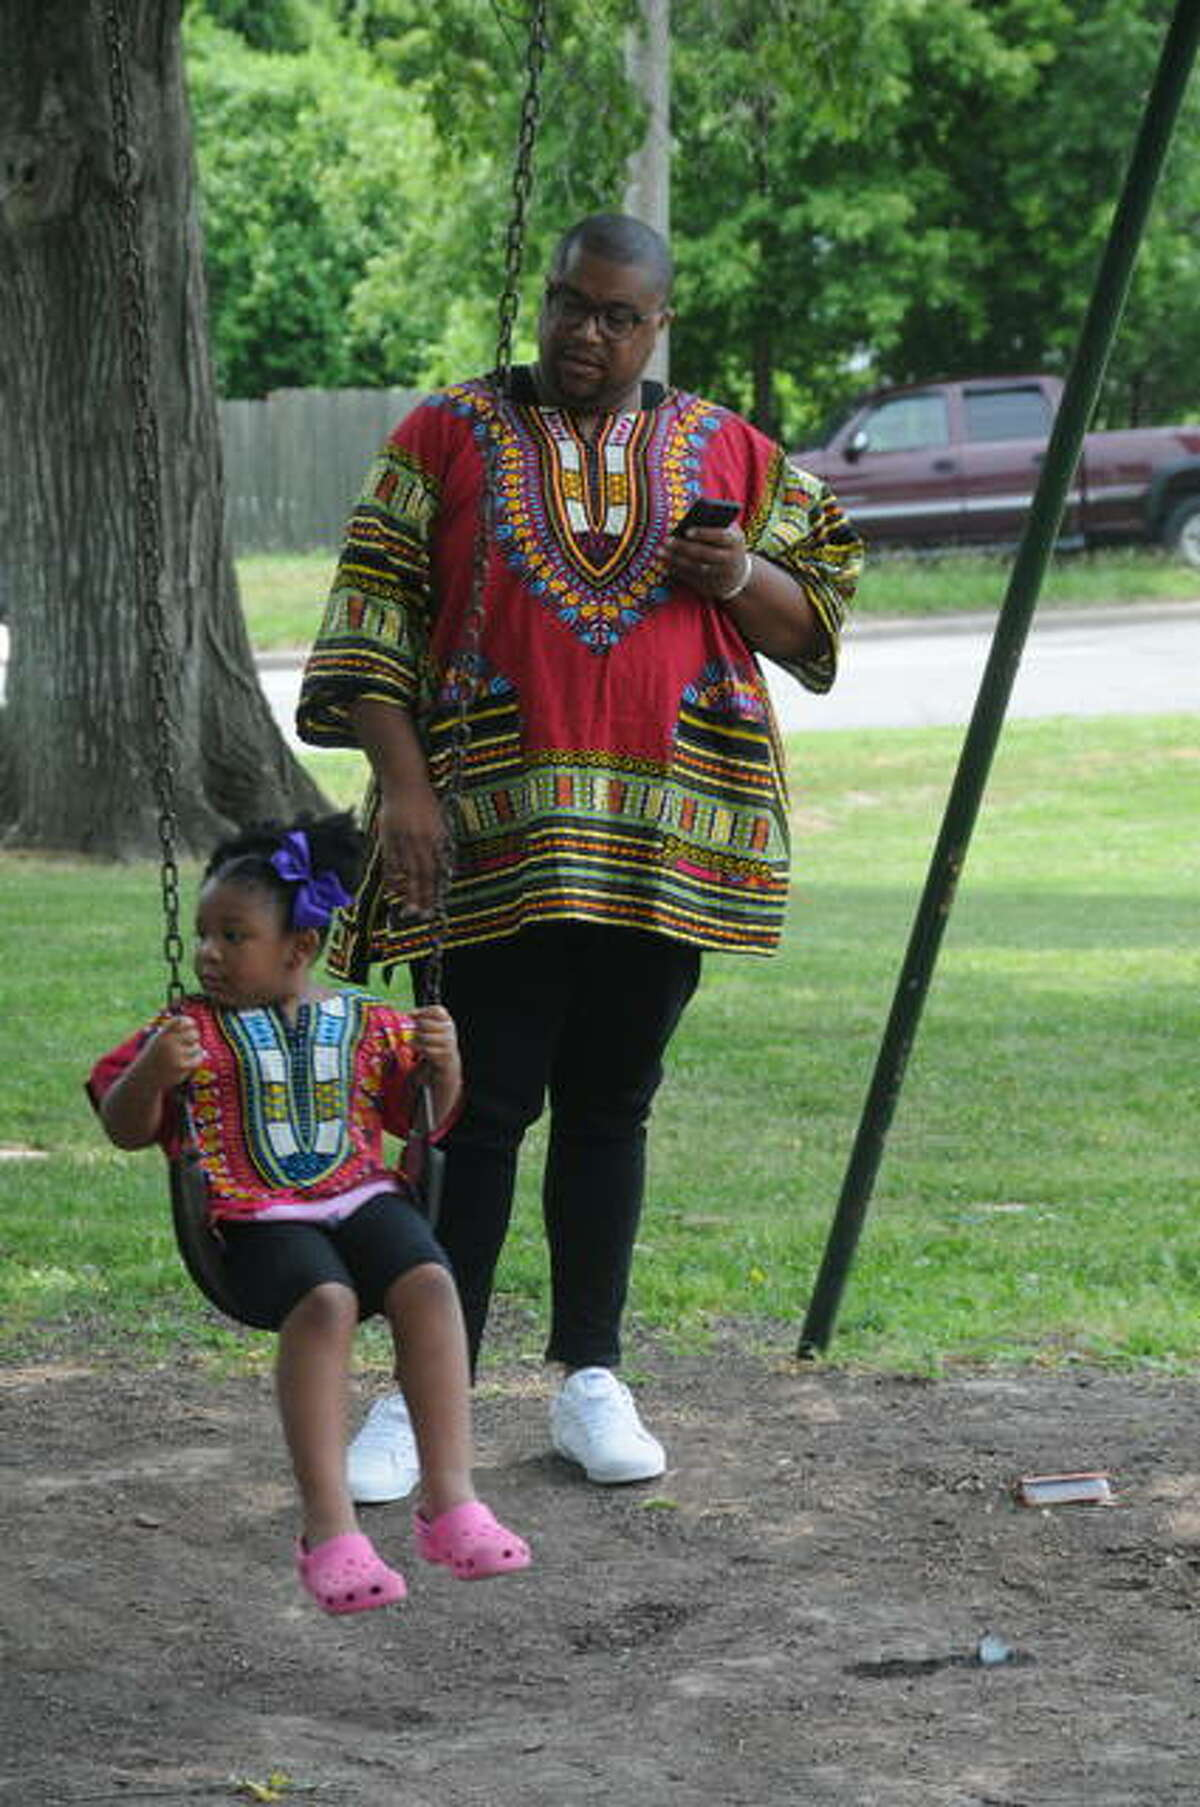 Mark Goins and his 4-year-old daughter, Mayla, relax during the Alton Juneteenth Celebration at James Killion Park in Alton.